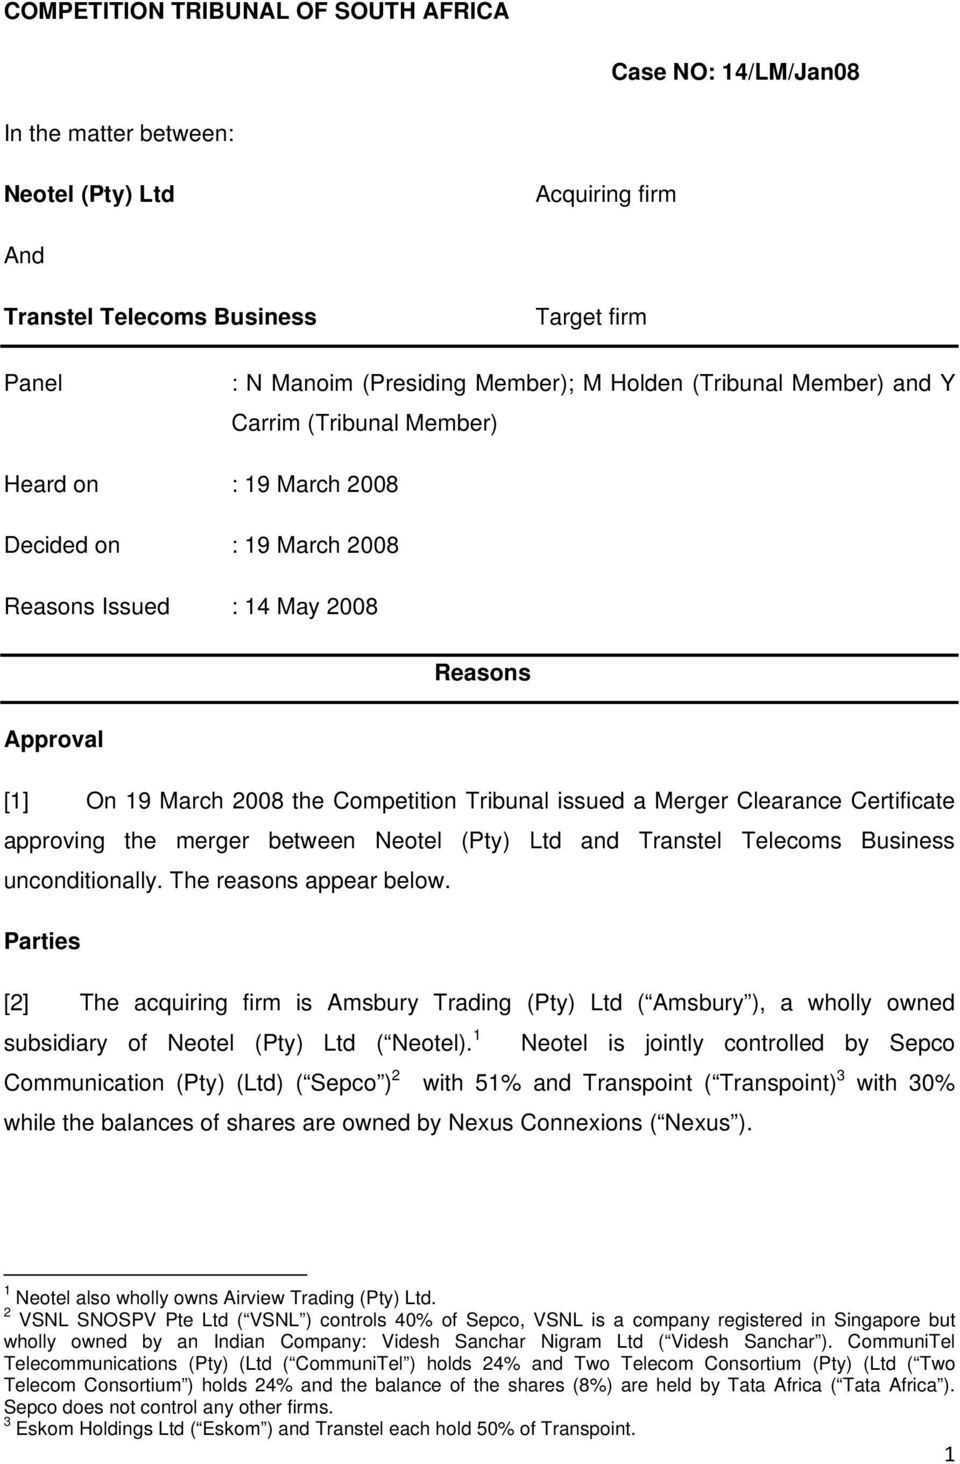 issued a Merger Clearance Certificate approving the merger between Neotel (Pty) Ltd and Transtel Telecoms Business unconditionally. The reasons appear below.